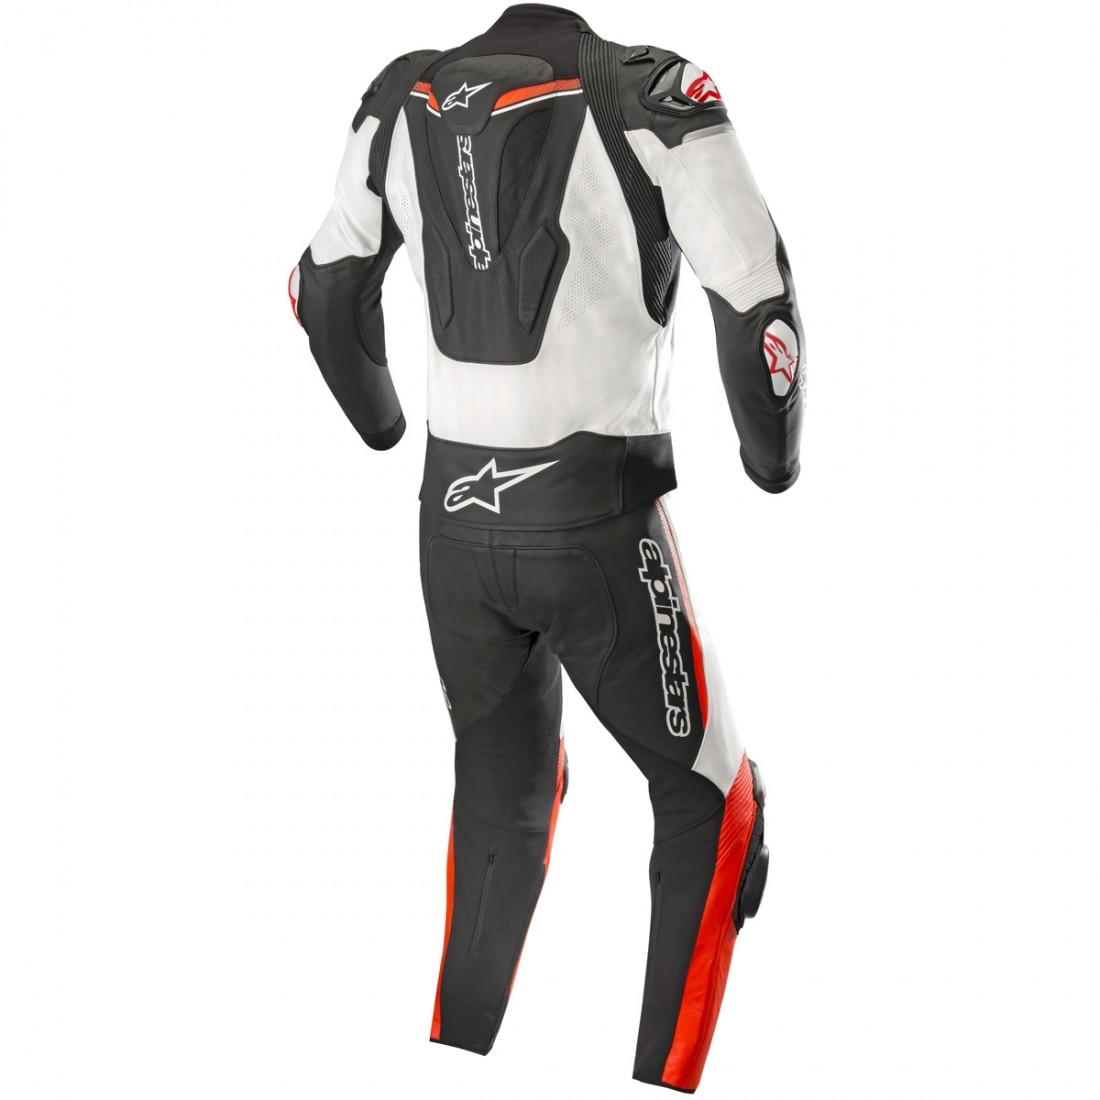 Alpinestars Jacket Leather >> ALPINESTARS Atem V3 Black / White / Red Fluo Suit · Motocard